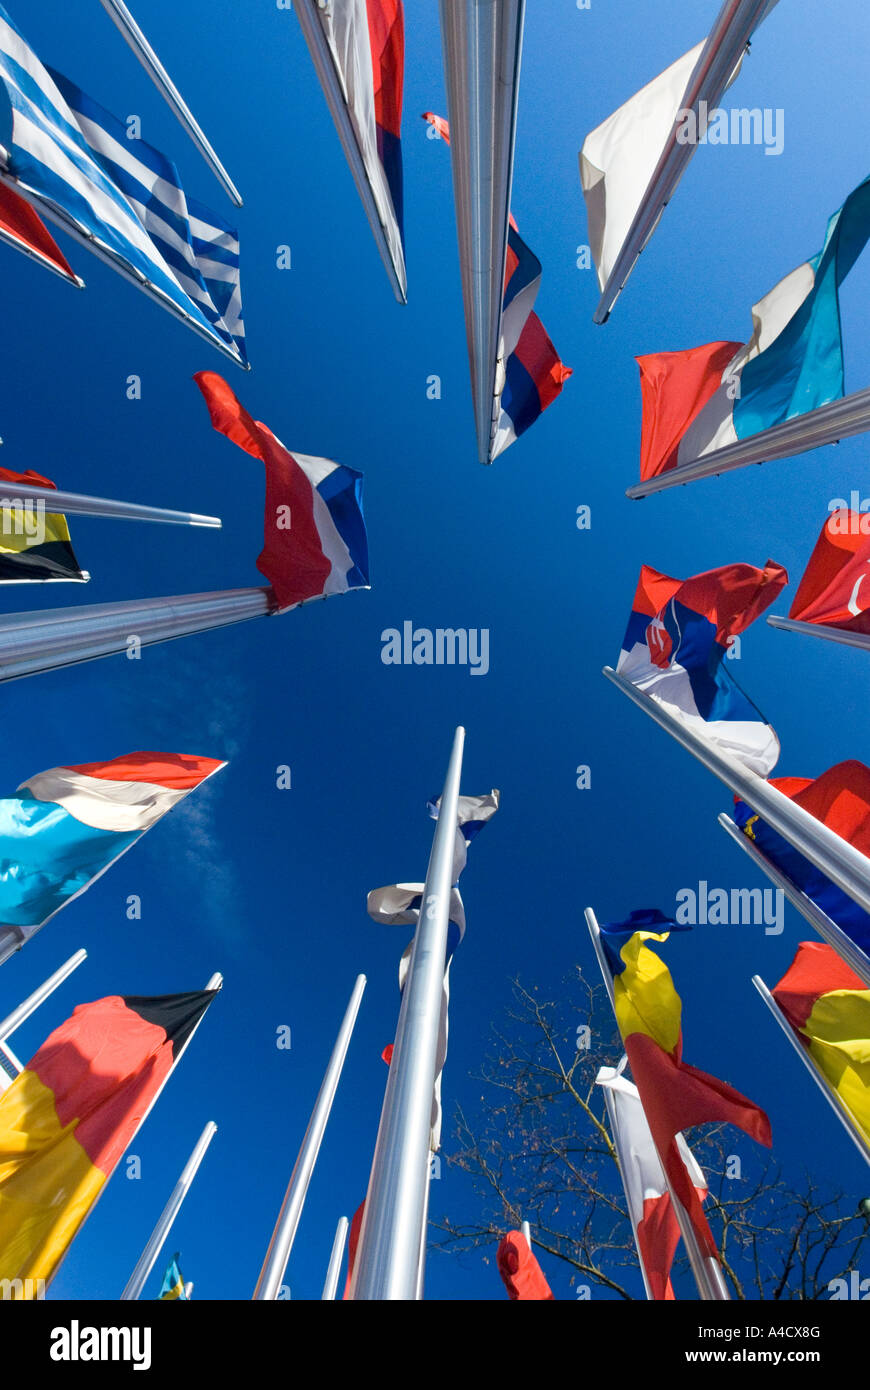 many european Flags standing together in blue sky - Stock Image